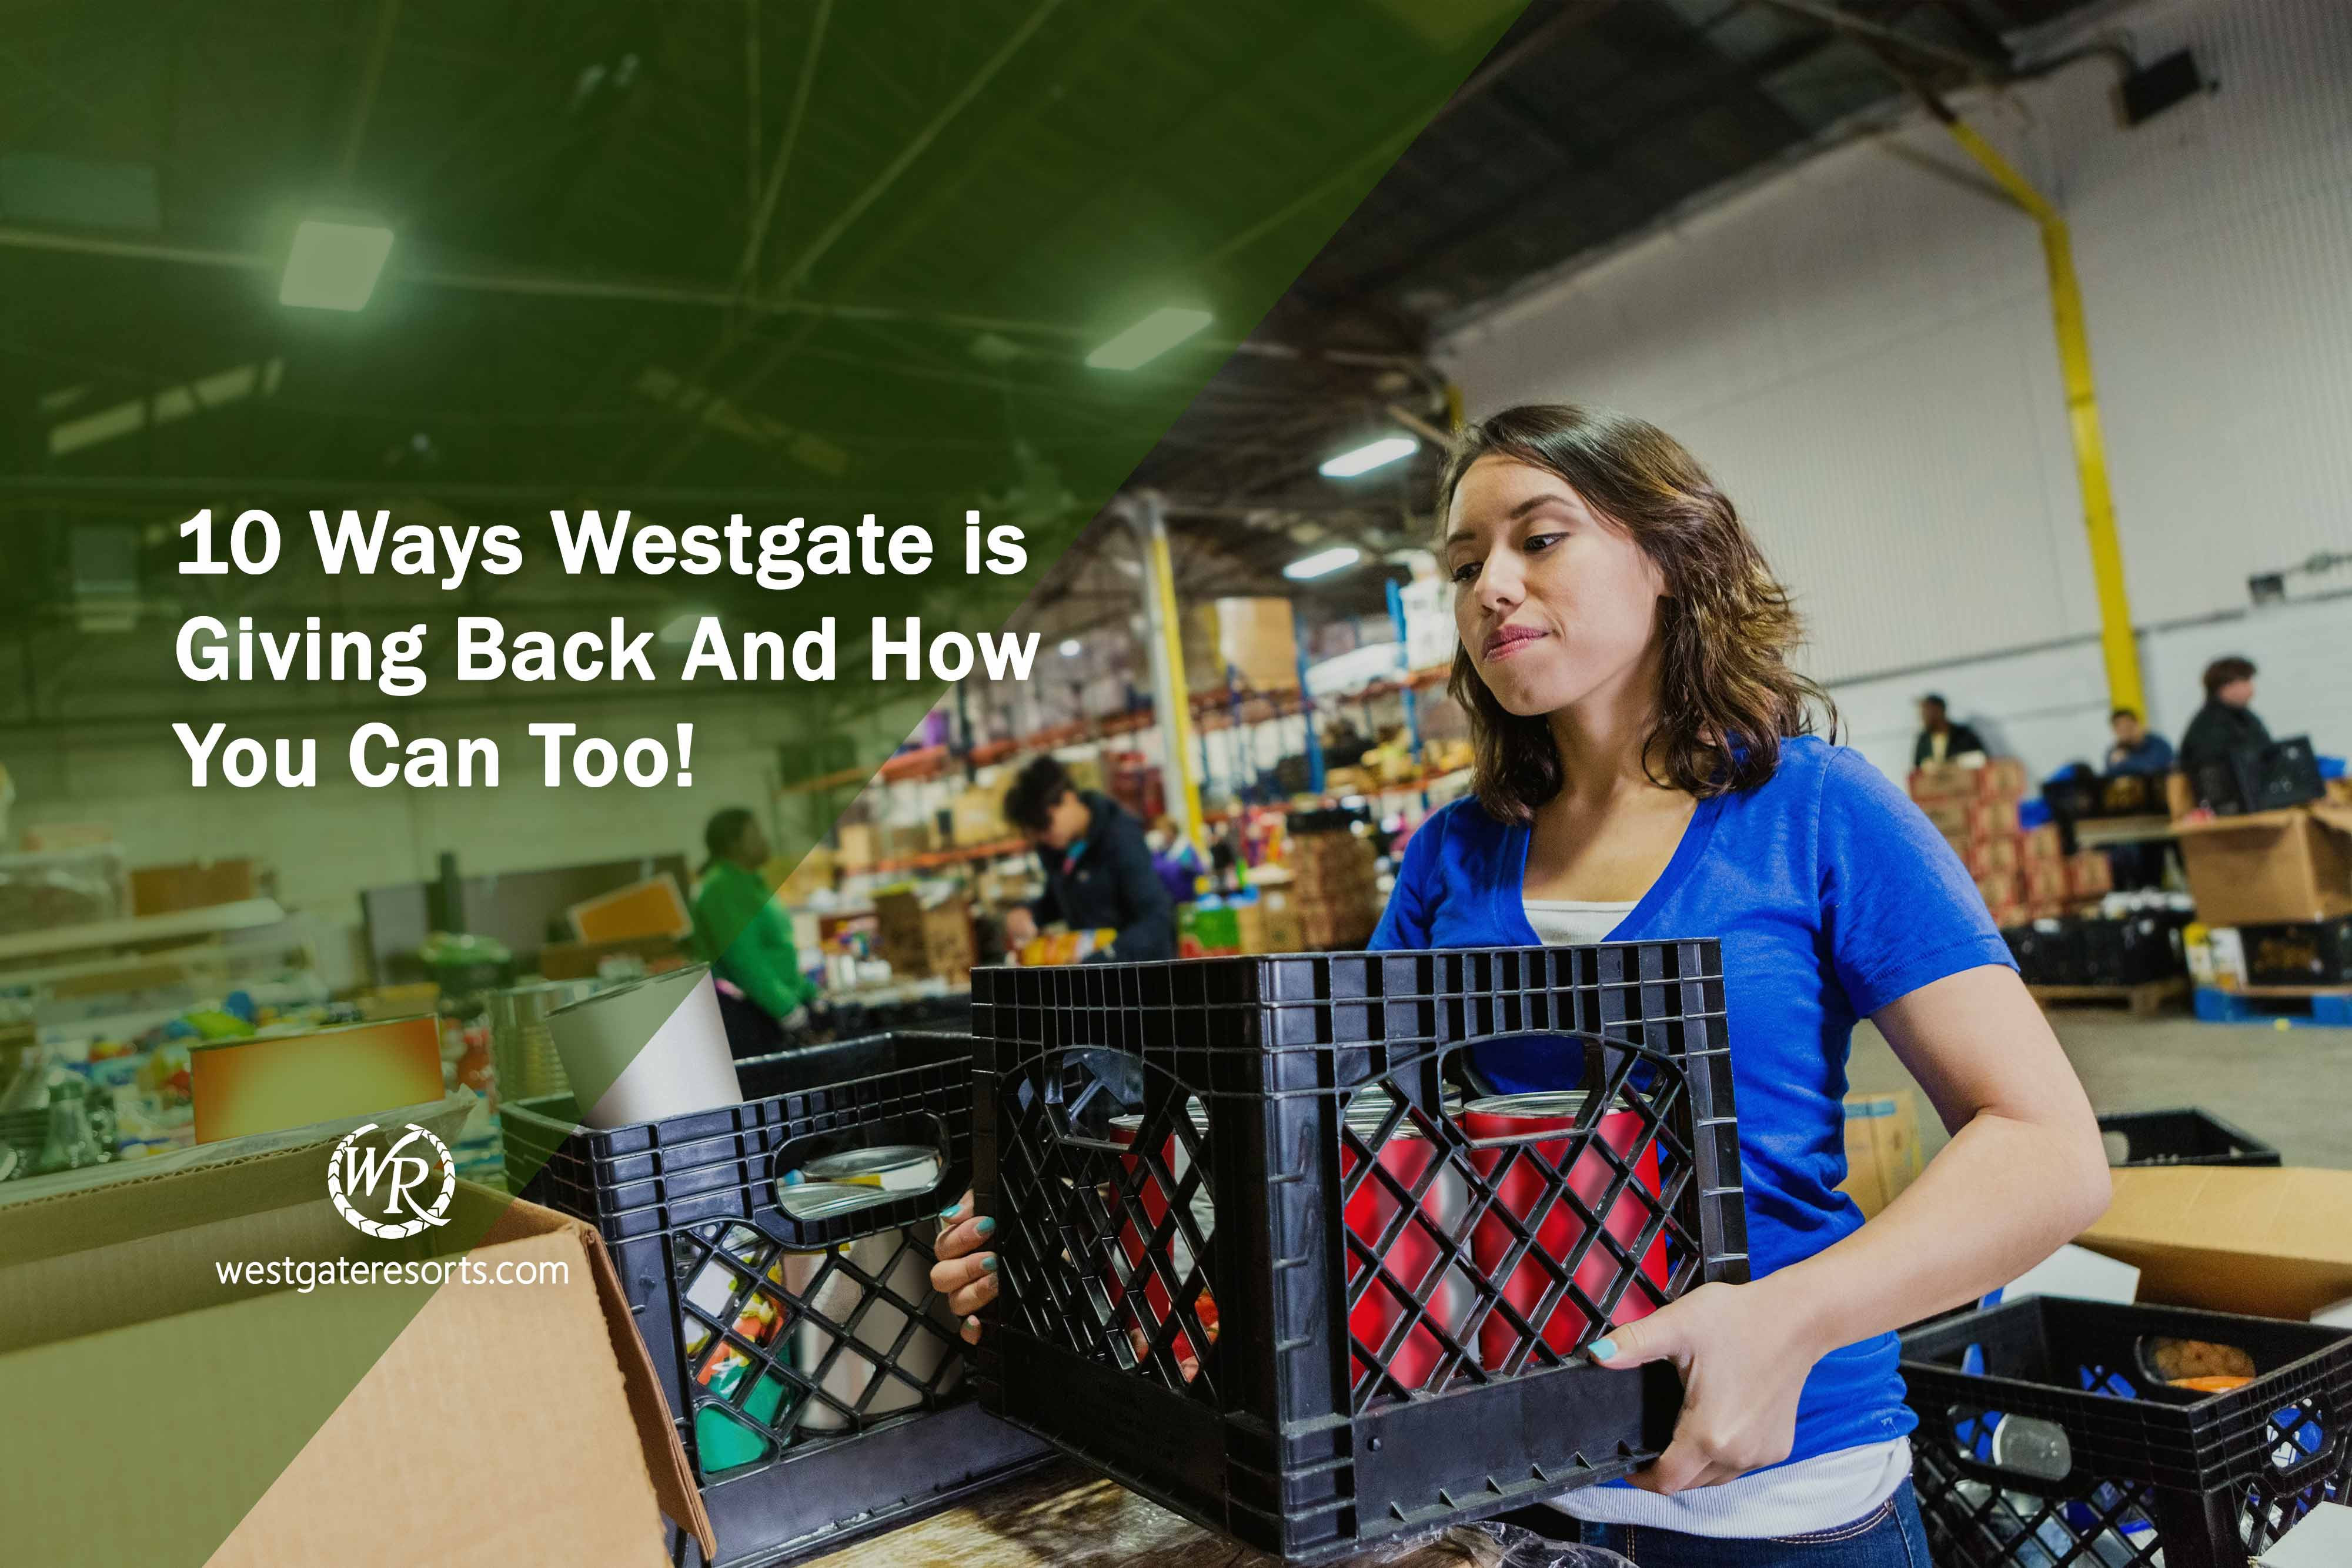 10 Ways Westgate is Giving Back And How You Can Too! | Westgate Travel Blog